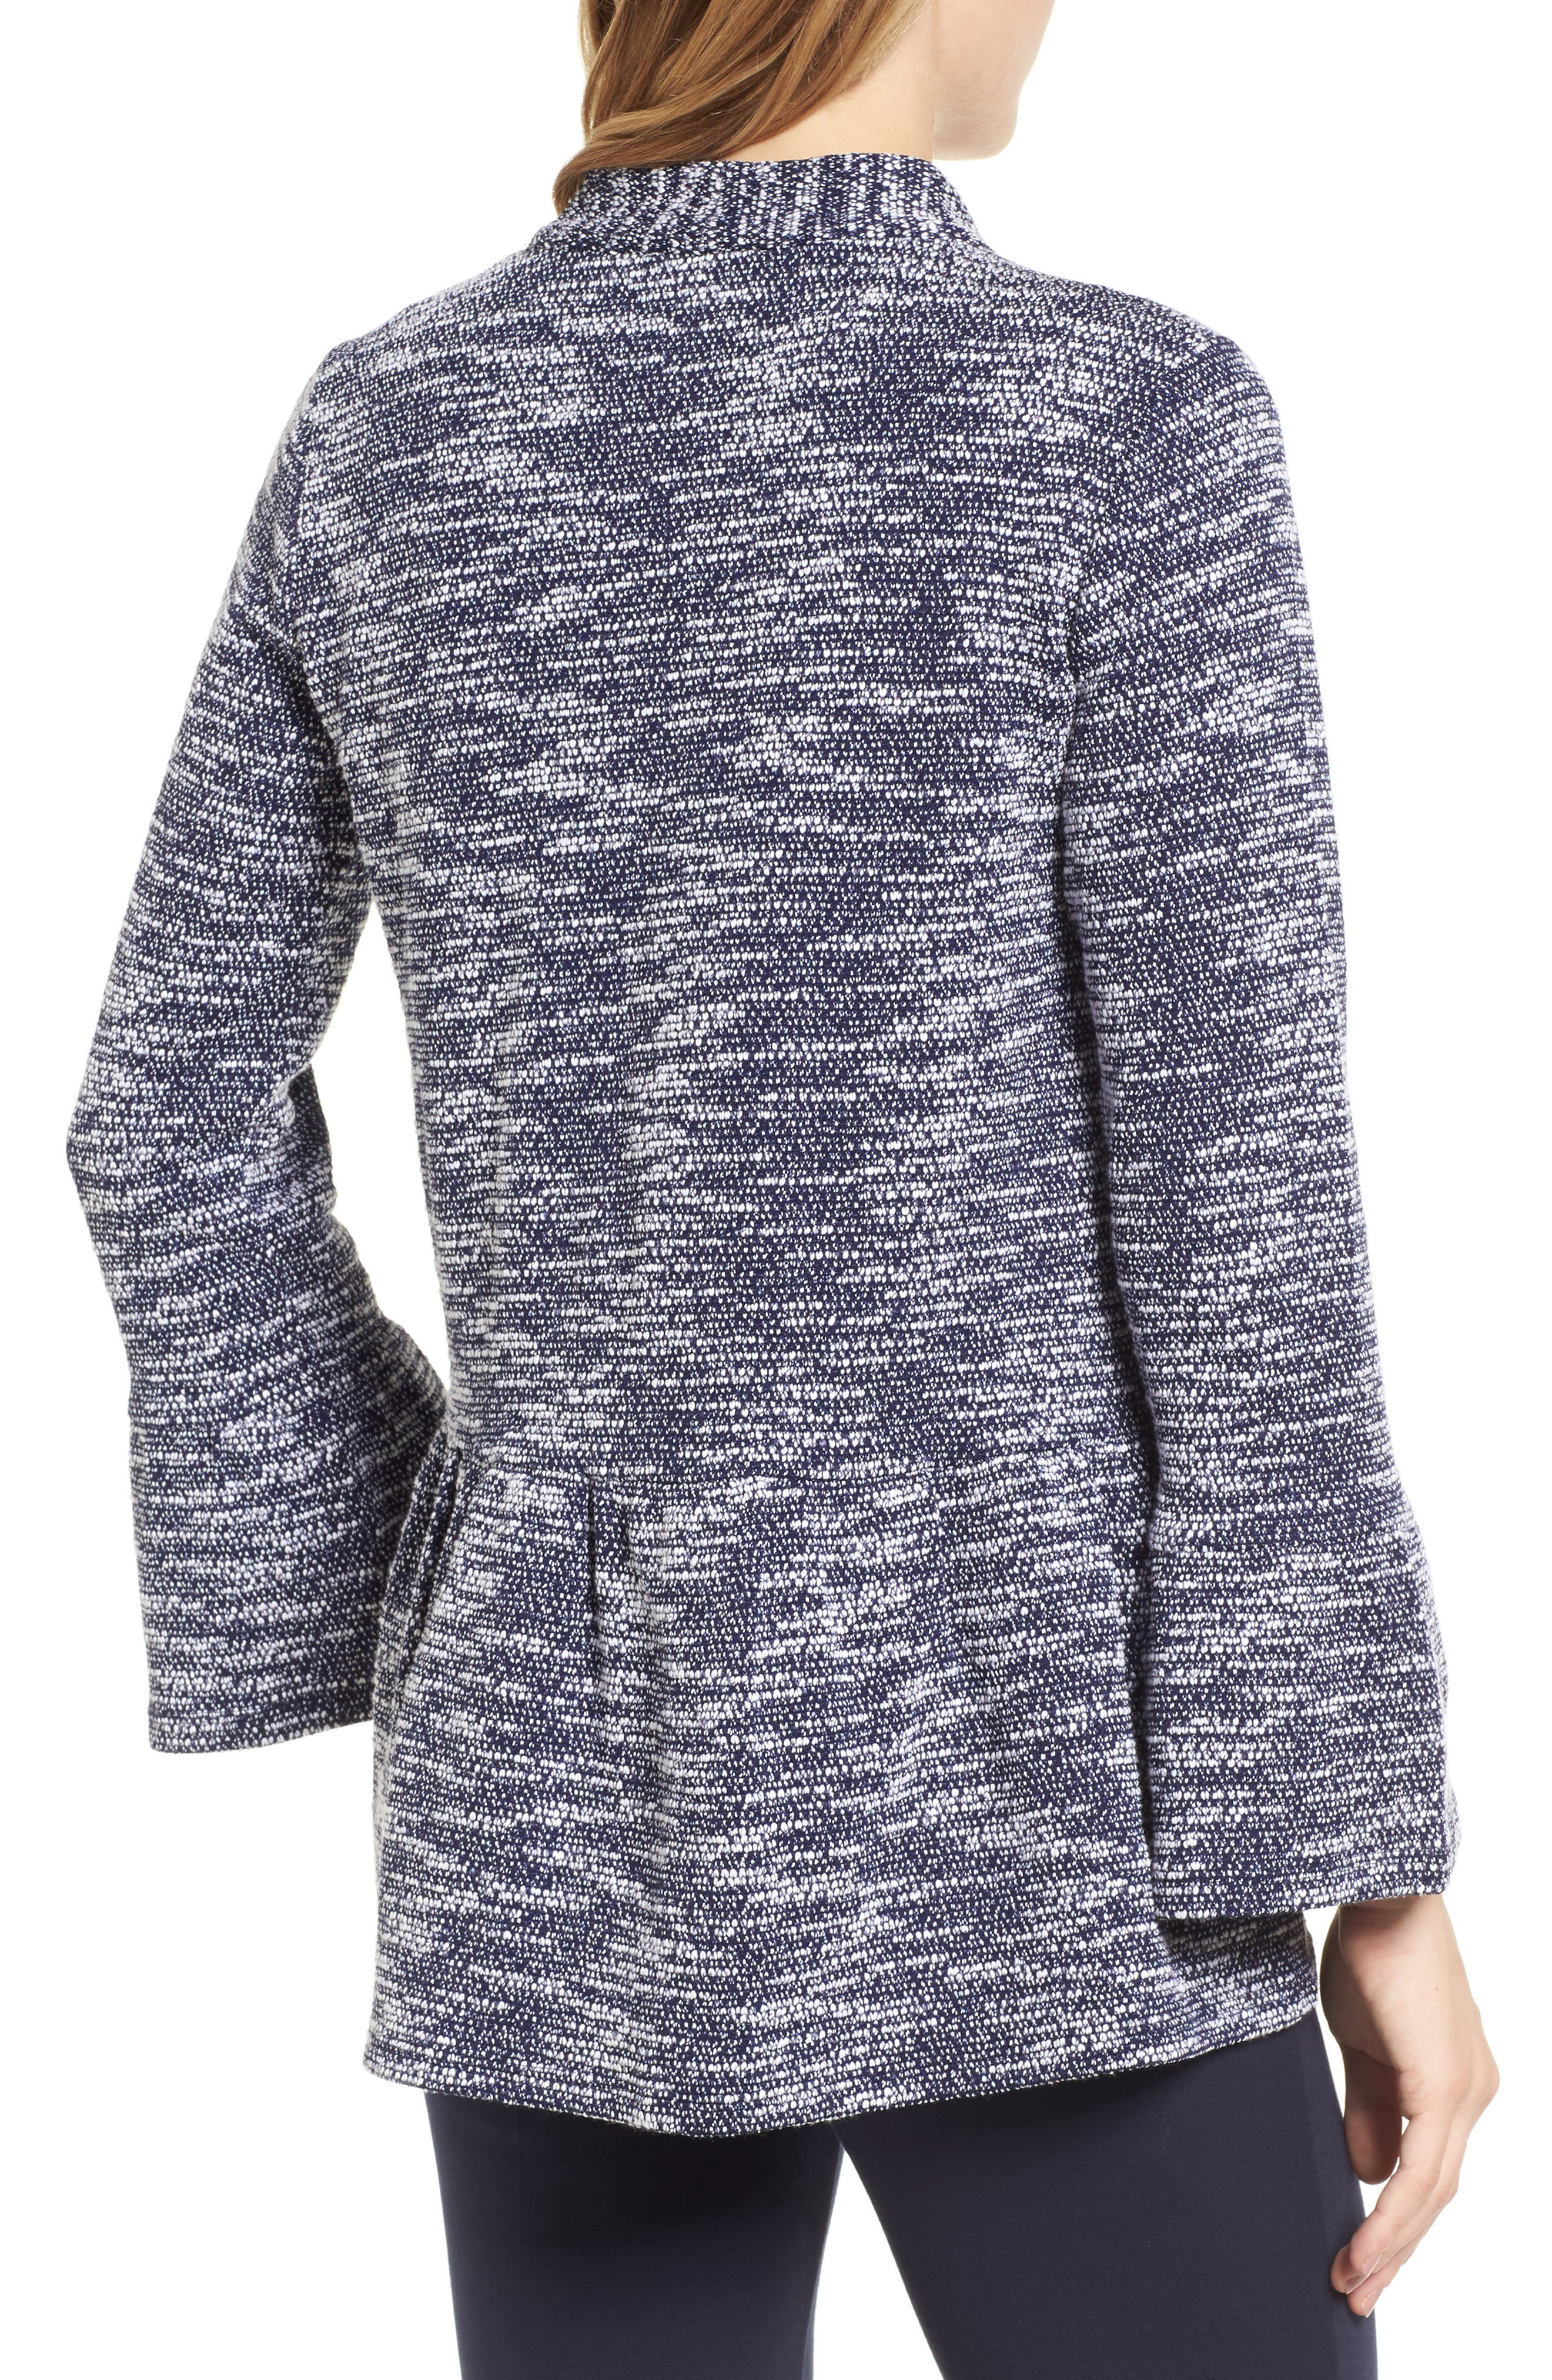 Bell Cuff Textured Cardigan,                             Alternate thumbnail 2, color,                             529-Evening Navy